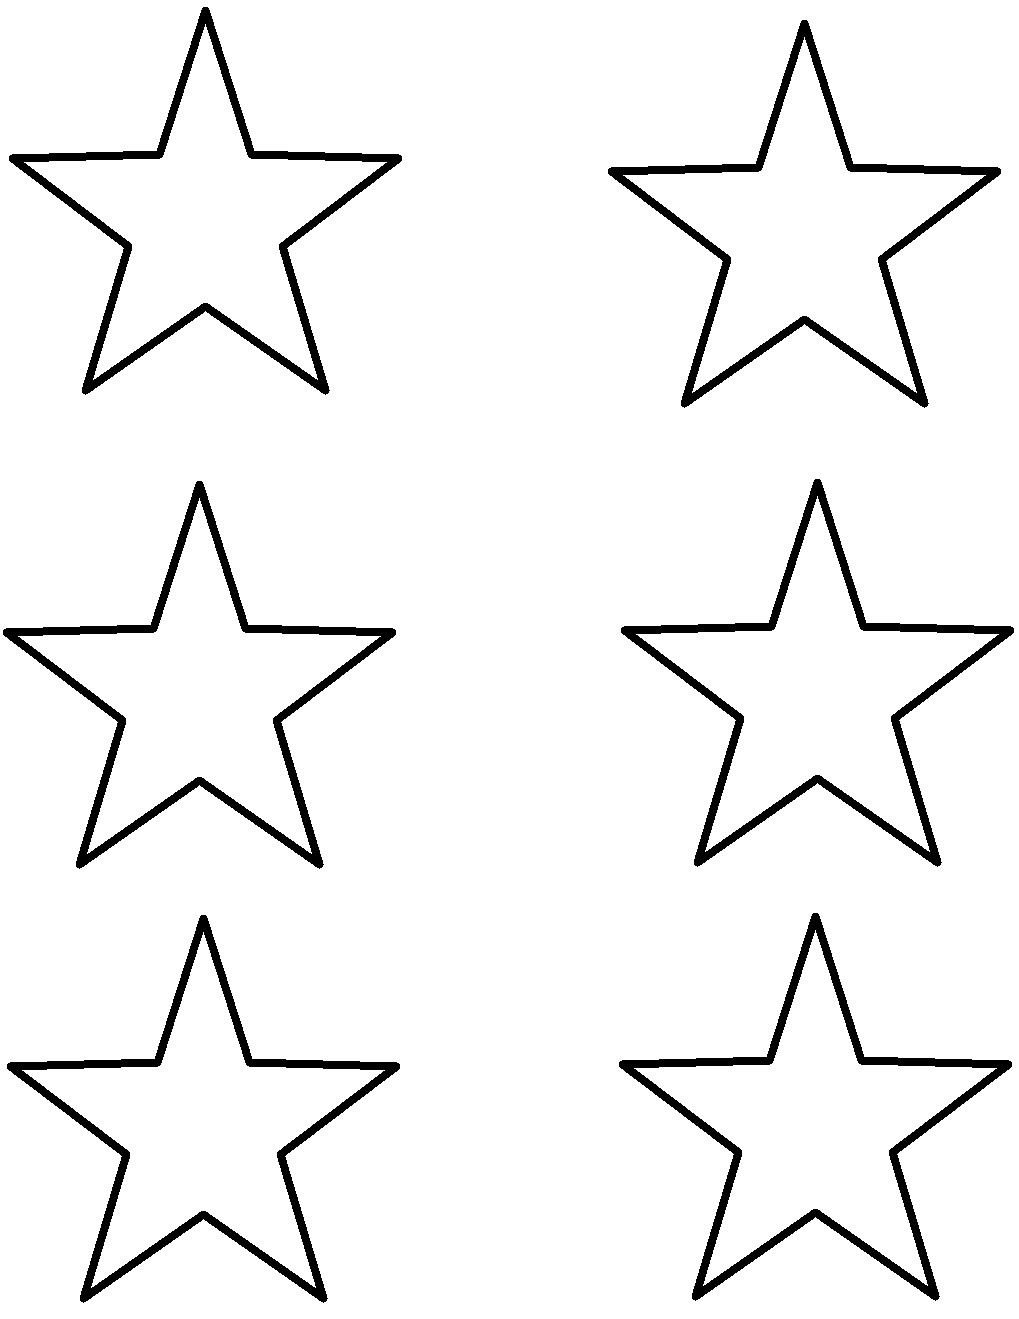 Free Printable Star, Download Free Clip Art, Free Clip Art On - Star Template Free Printable